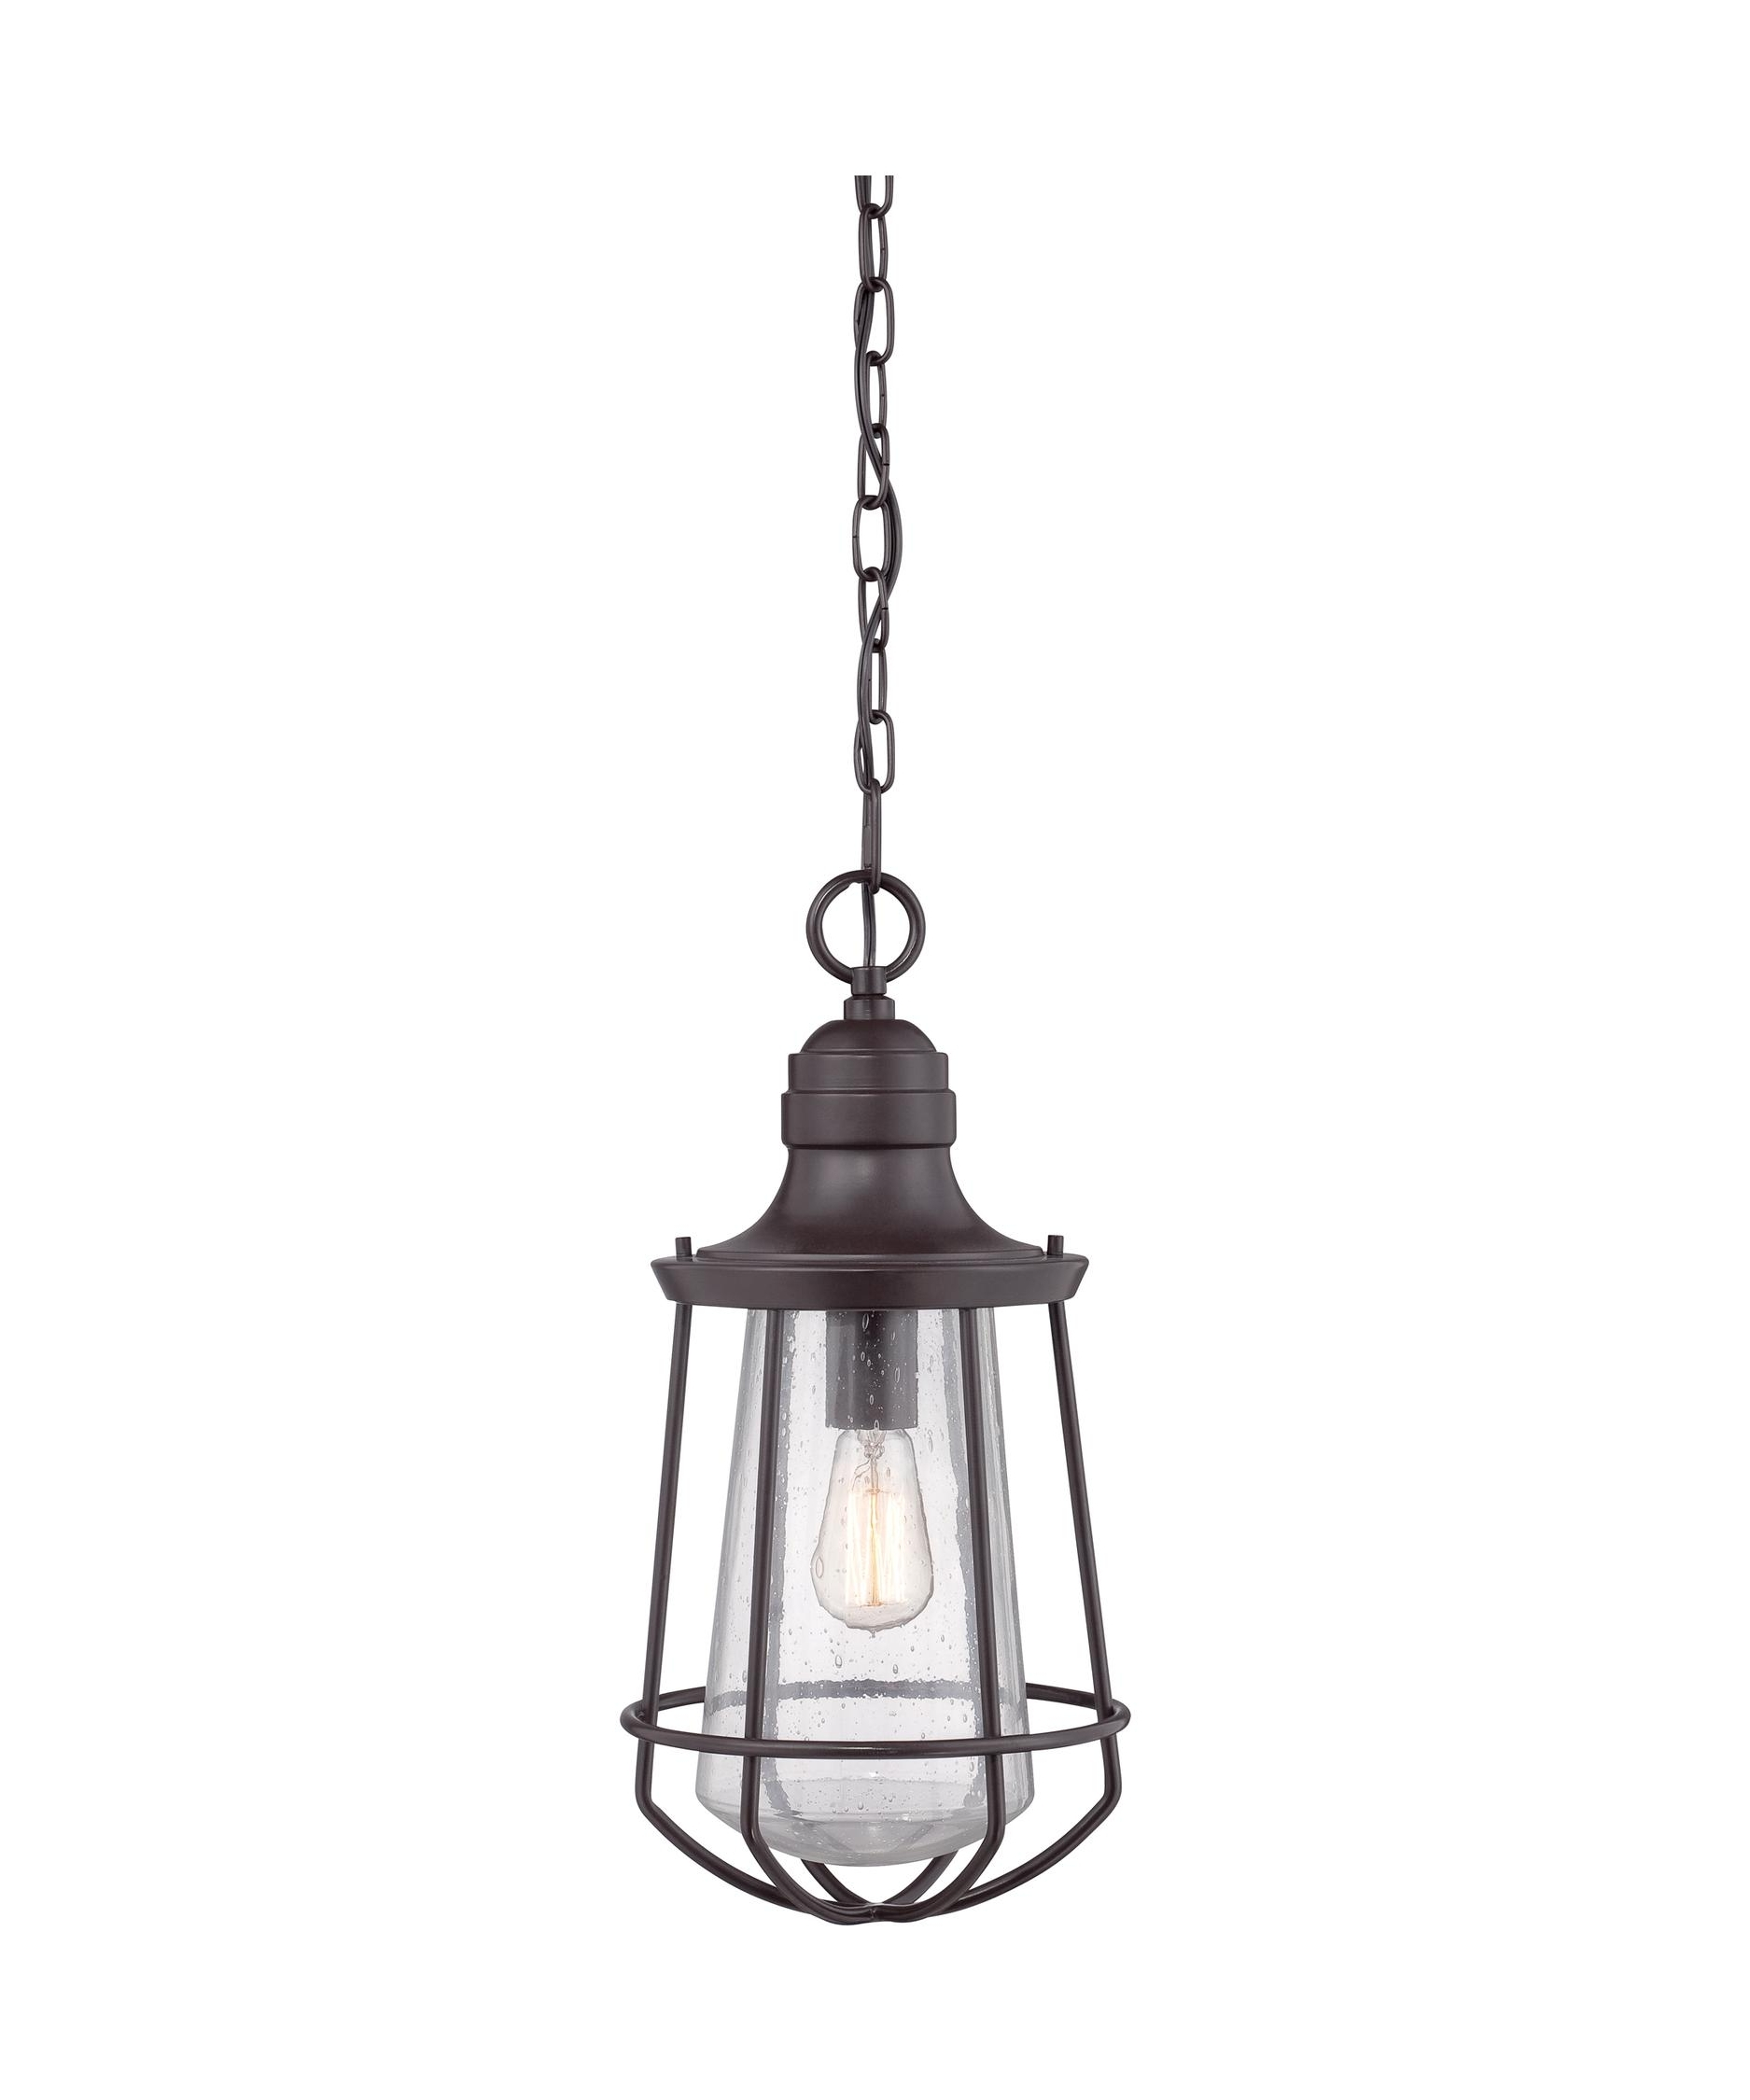 Well Liked Quoizel Mre1909 Marine 10 Inch Wide 1 Light Outdoor Hanging Lantern Pertaining To Quoizel Outdoor Hanging Lights (View 20 of 20)